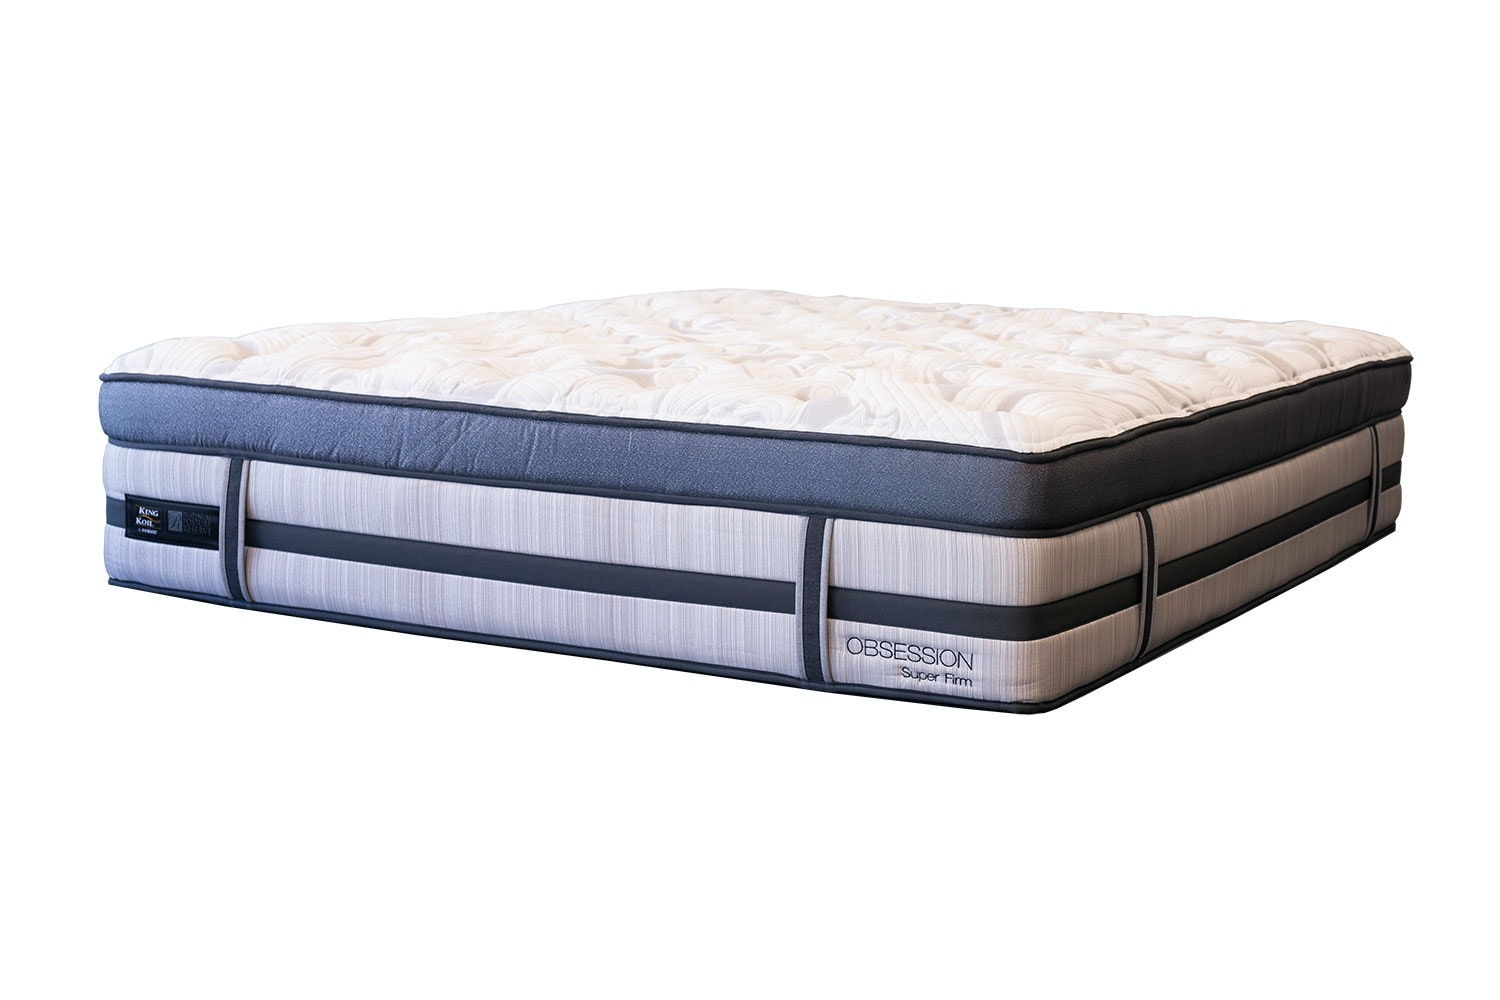 Obsession Super Firm King Mattress by King Koil